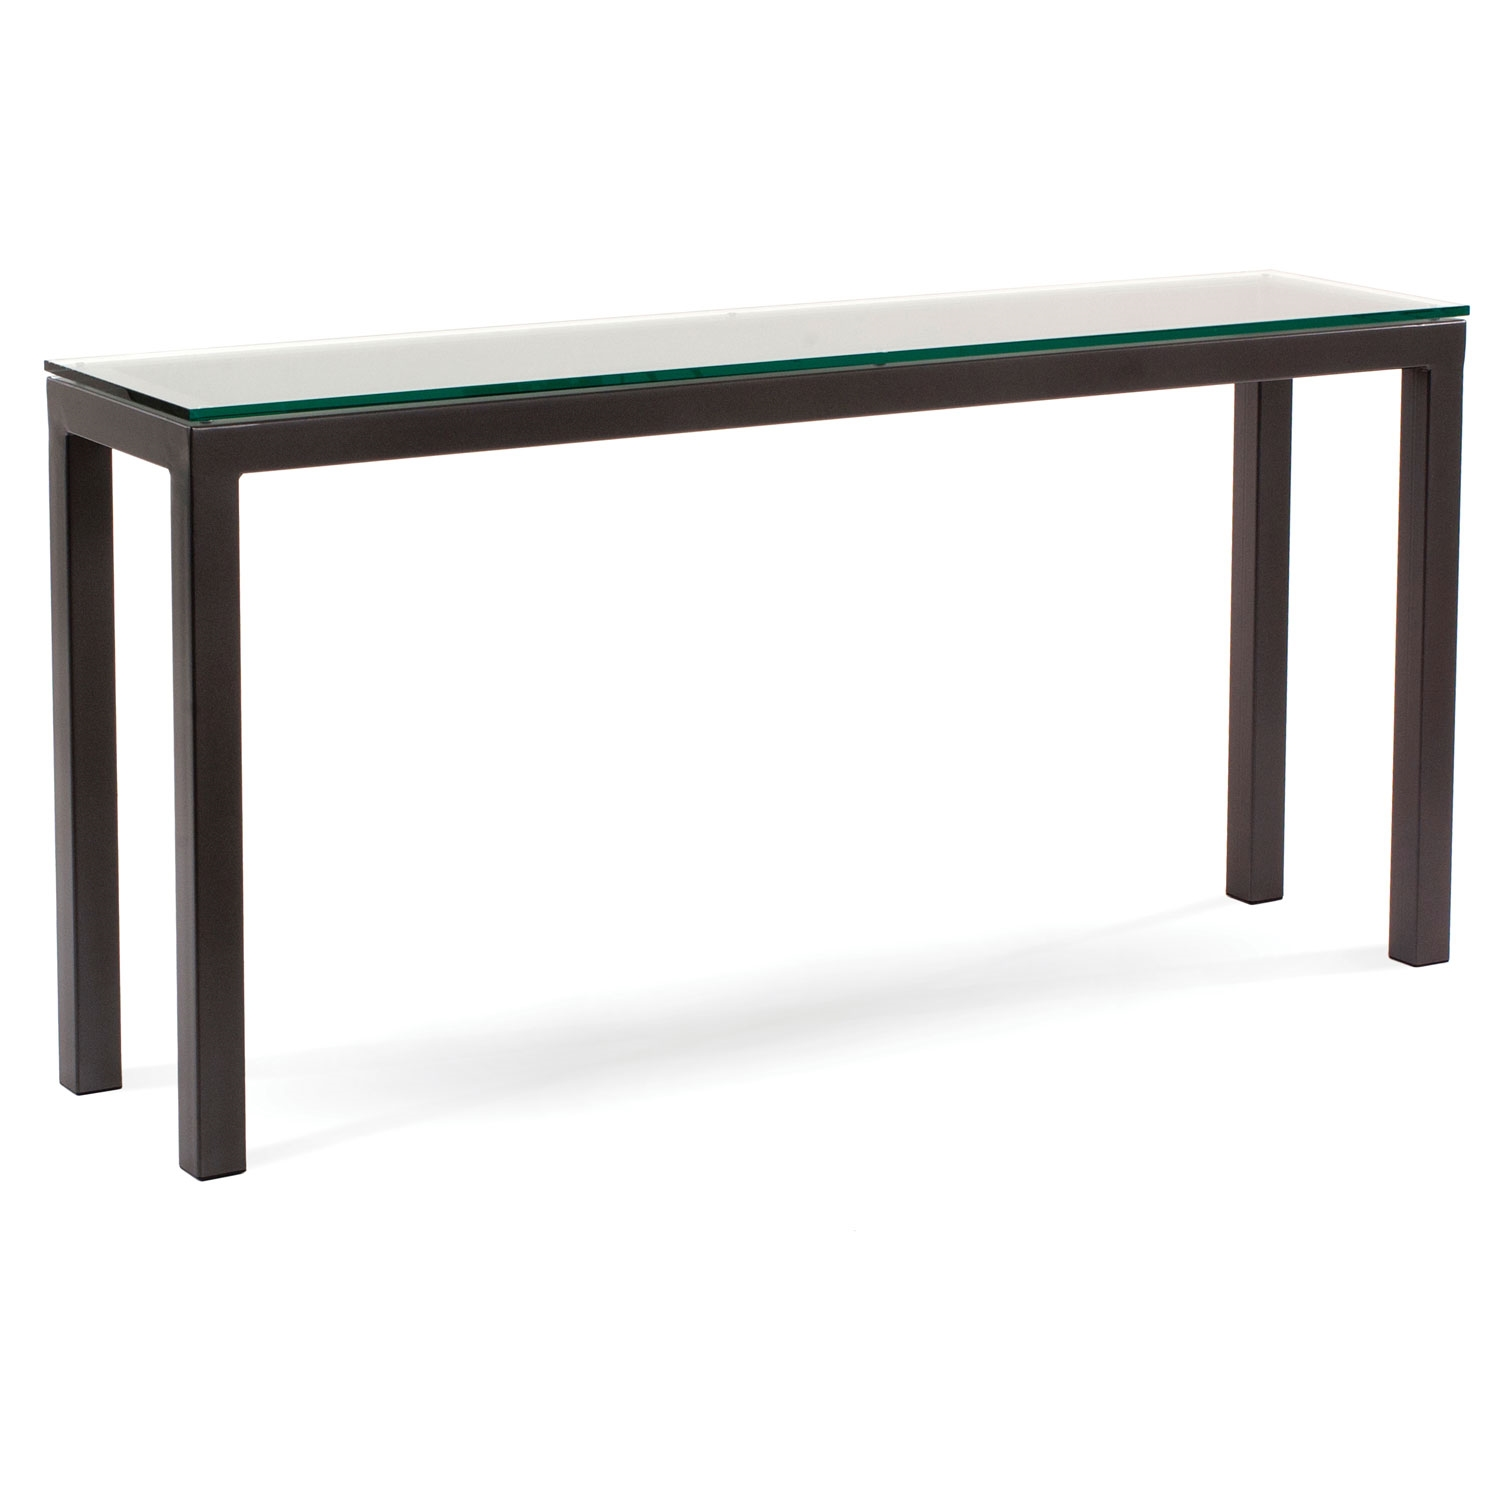 60-in Contemporary Parsons Console Table | W 60-in x D 14-in x H 29.5-in